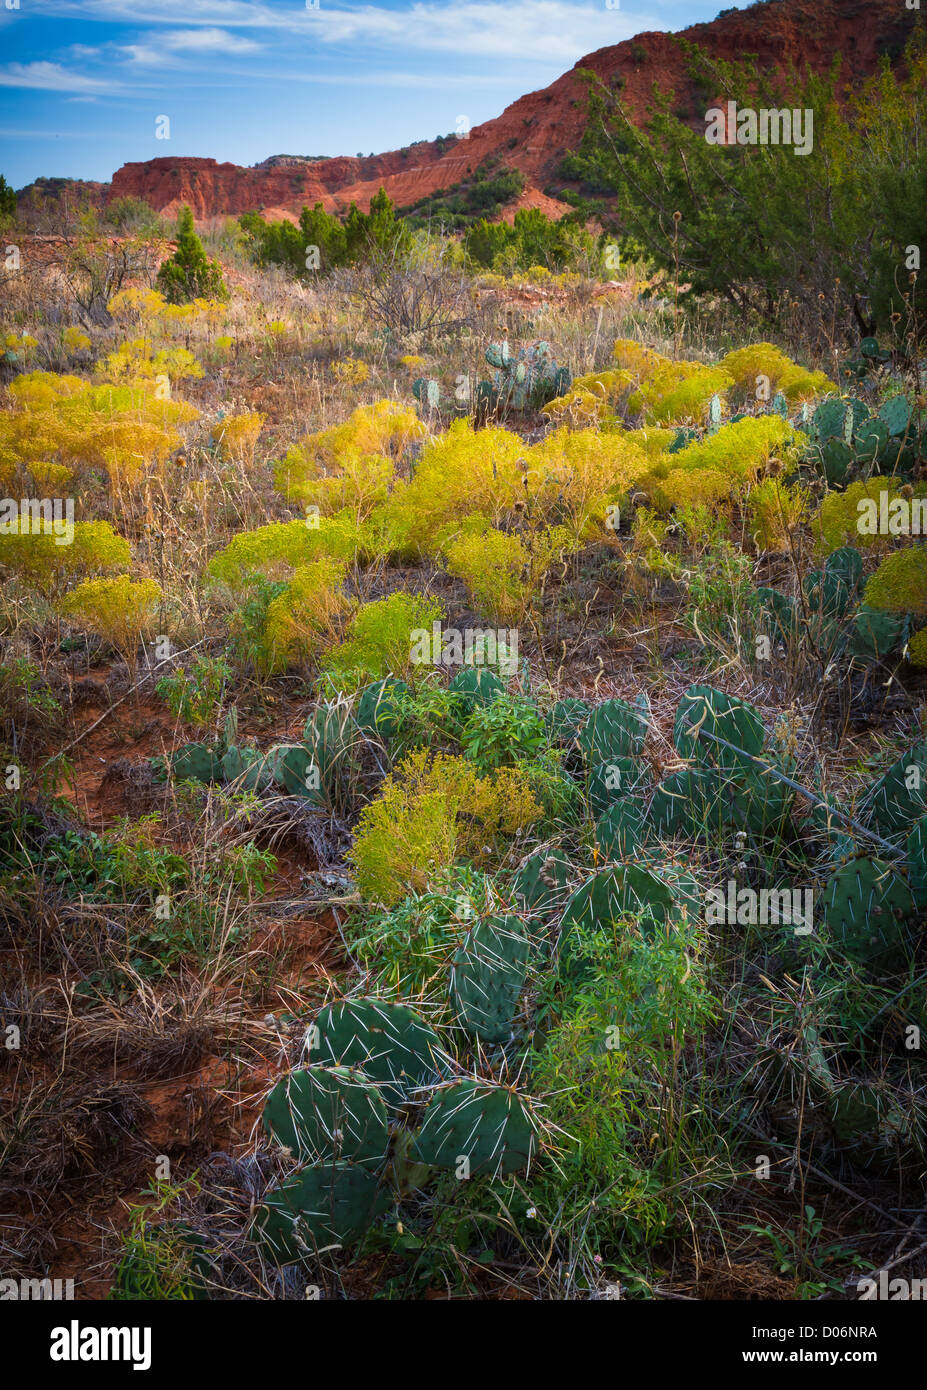 Ground vegetation at Caprock Canyon State Park, Texas - Stock Image